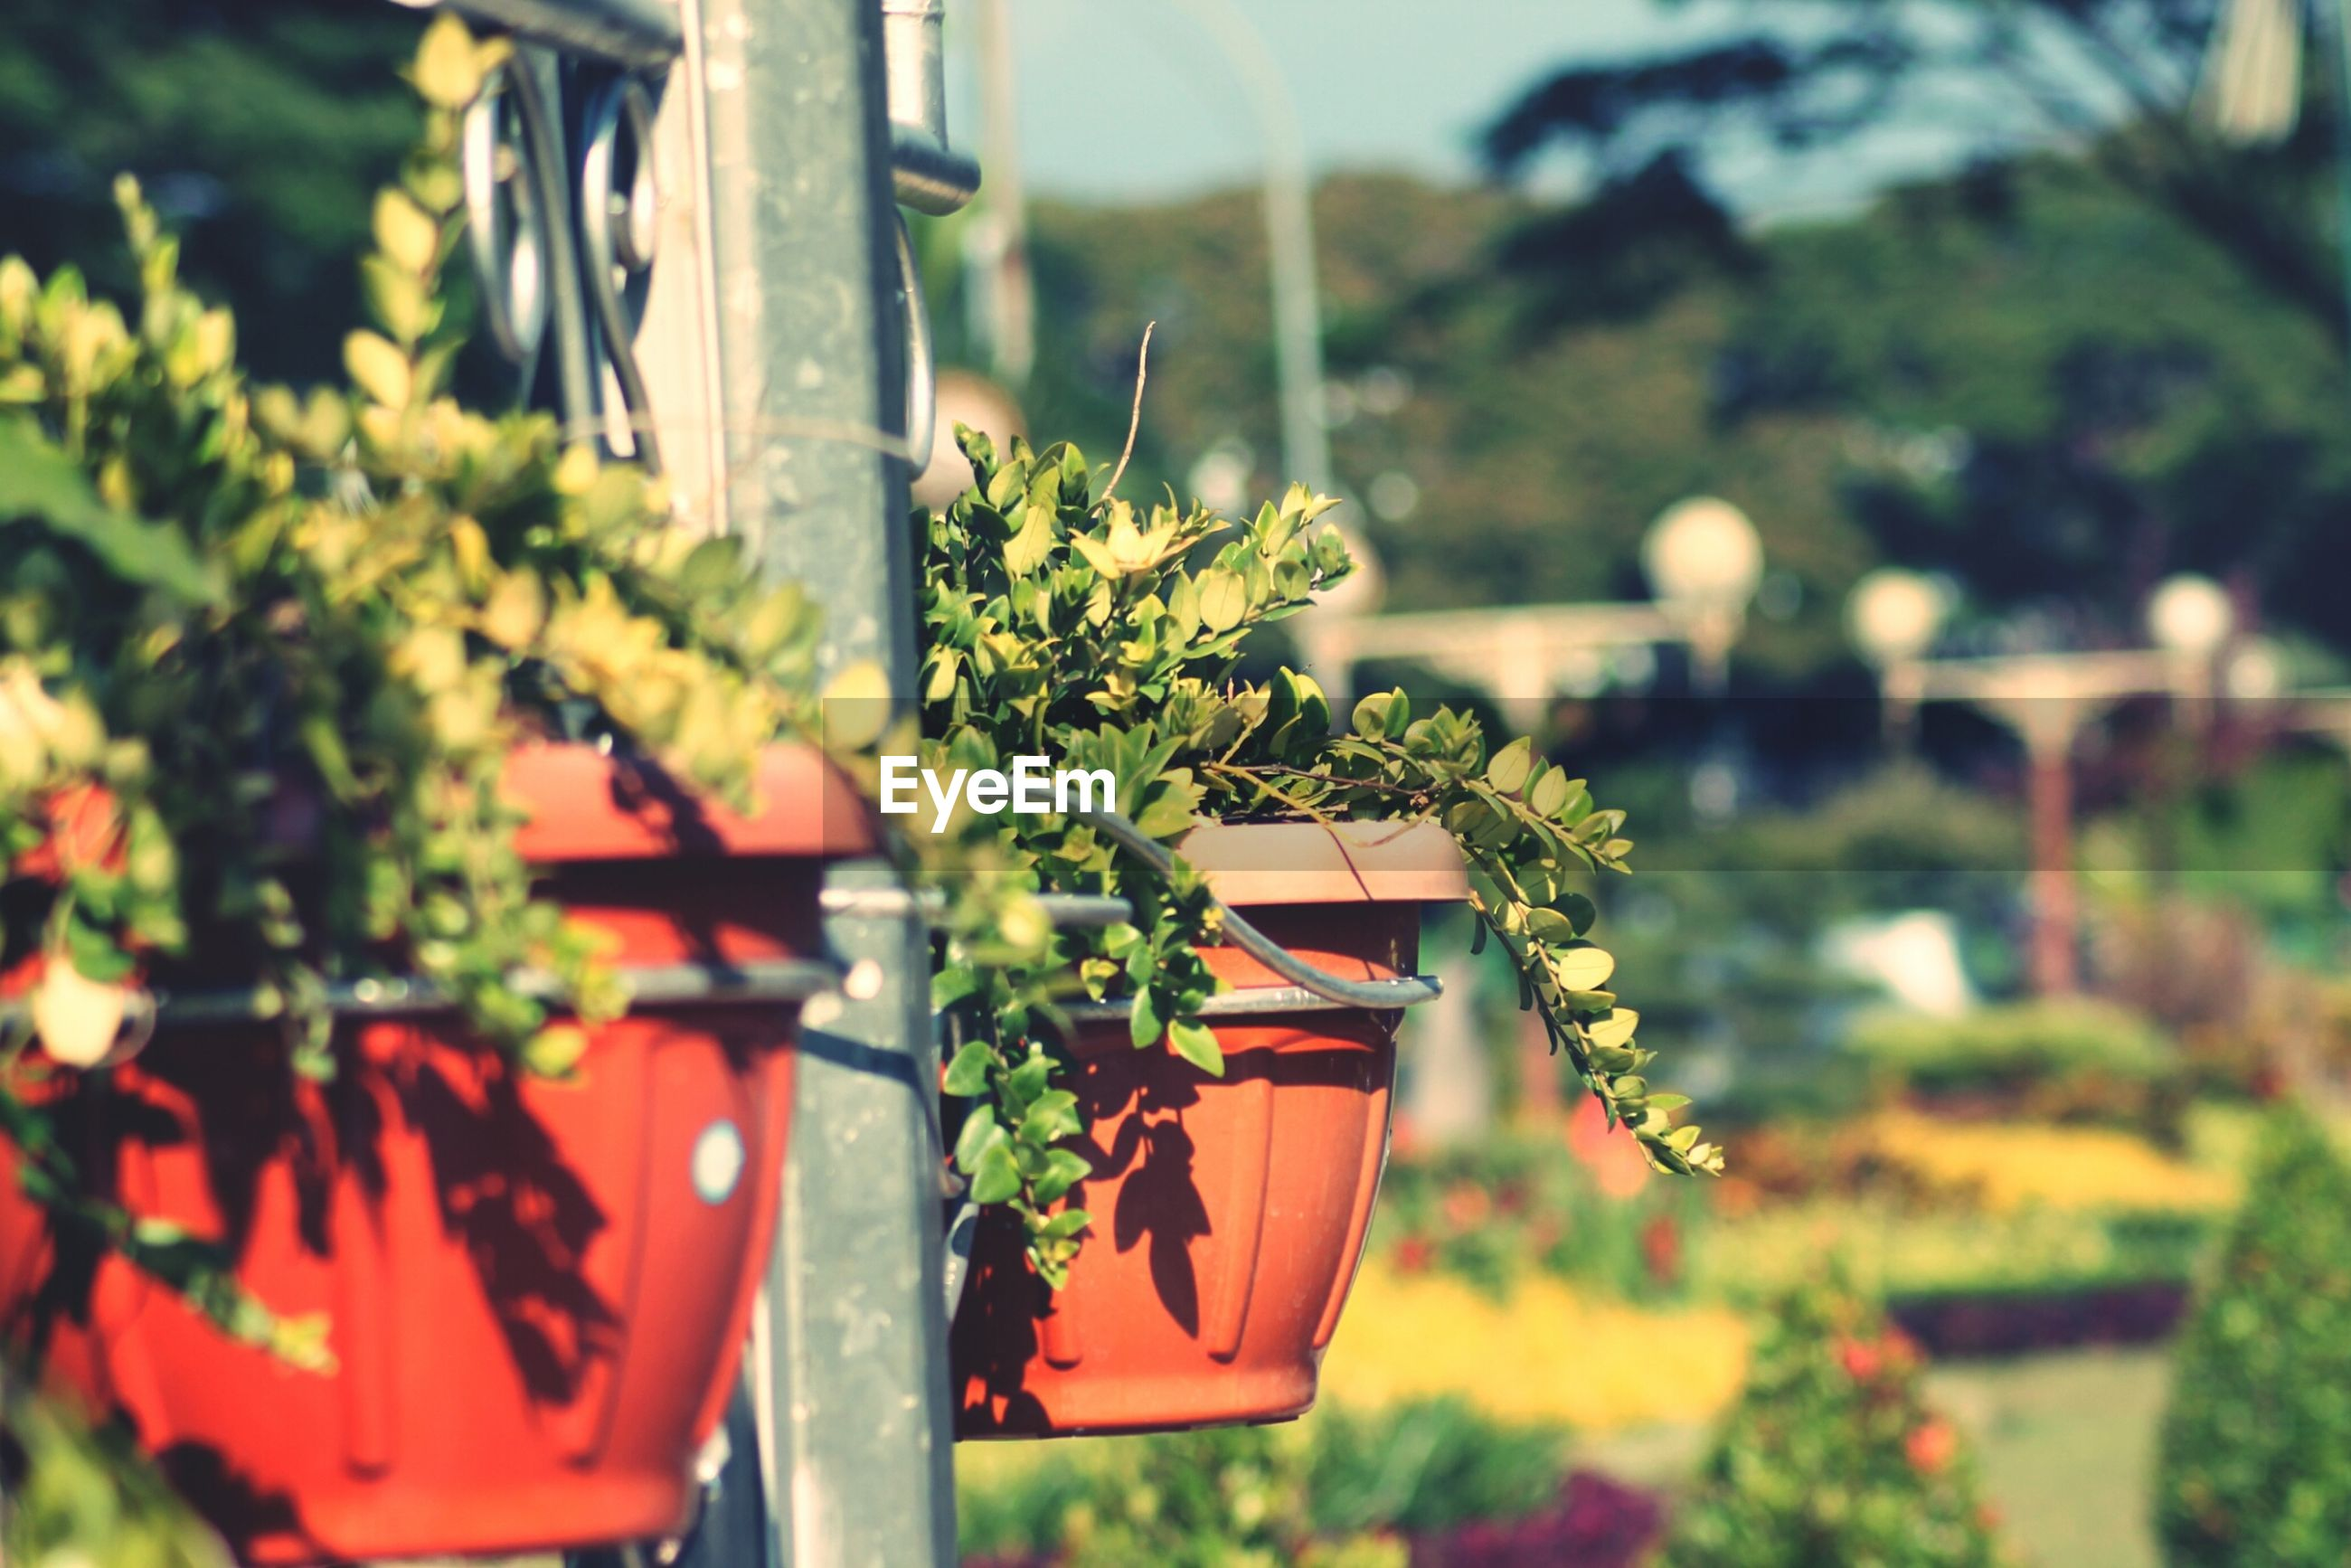 focus on foreground, plant, growth, flower, potted plant, close-up, freshness, selective focus, red, green color, nature, front or back yard, day, leaf, fragility, flower pot, beauty in nature, outdoors, tree, house